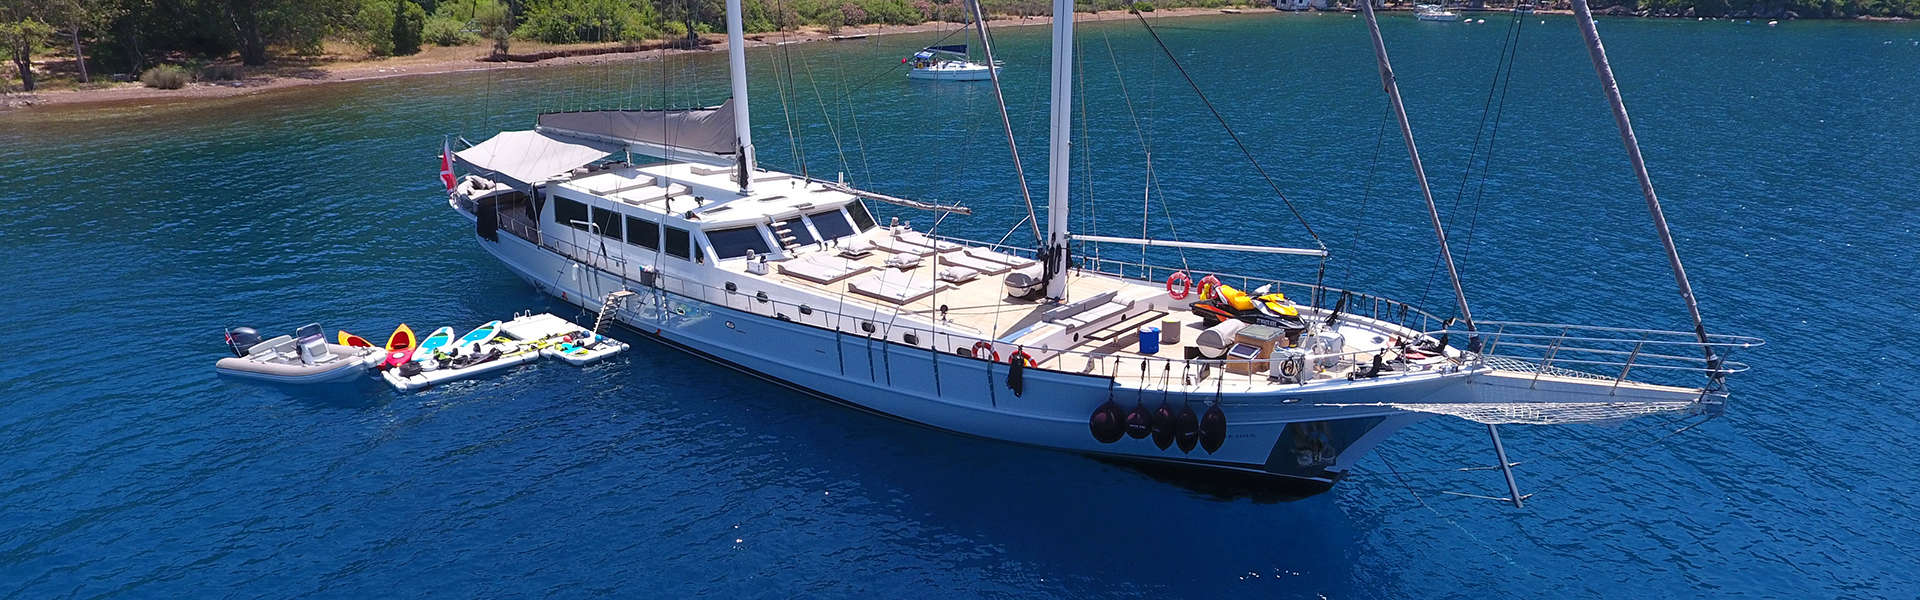 FAMILY GULET CRUISE IN TURKEY Header image